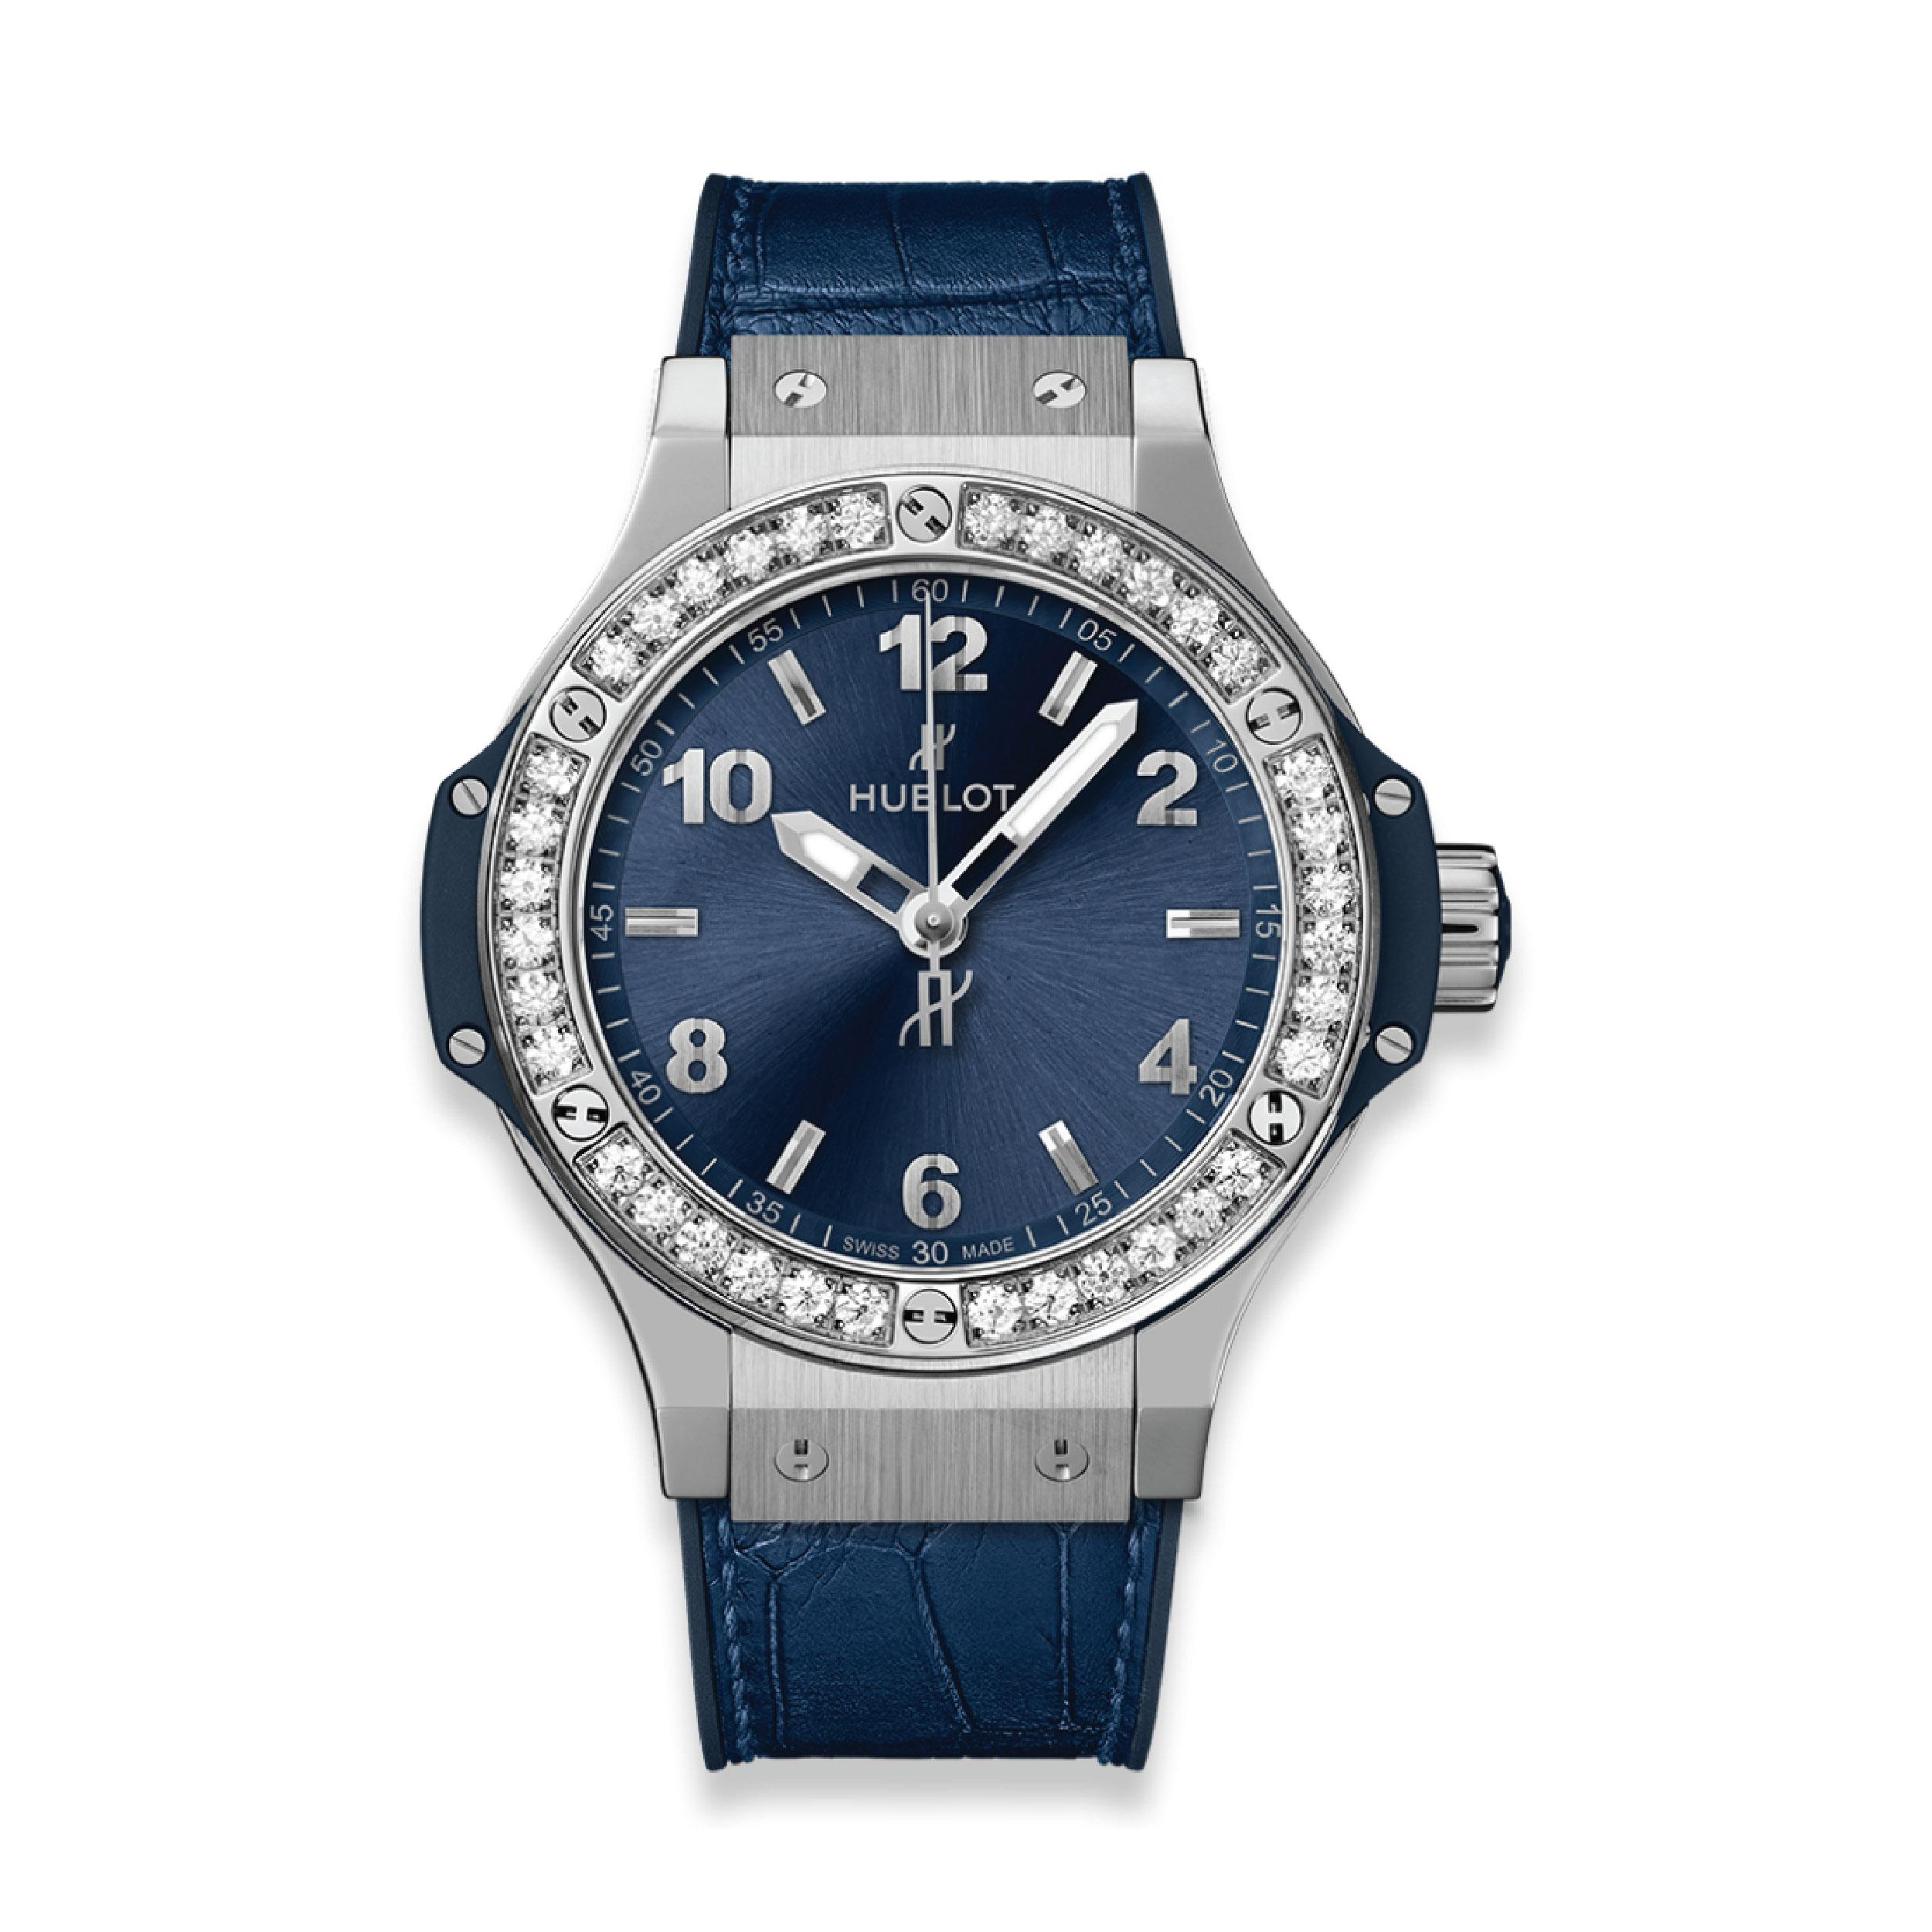 HUBLOT ЧАСЫ BIG BANG STEEL BLUE DIAMONDS